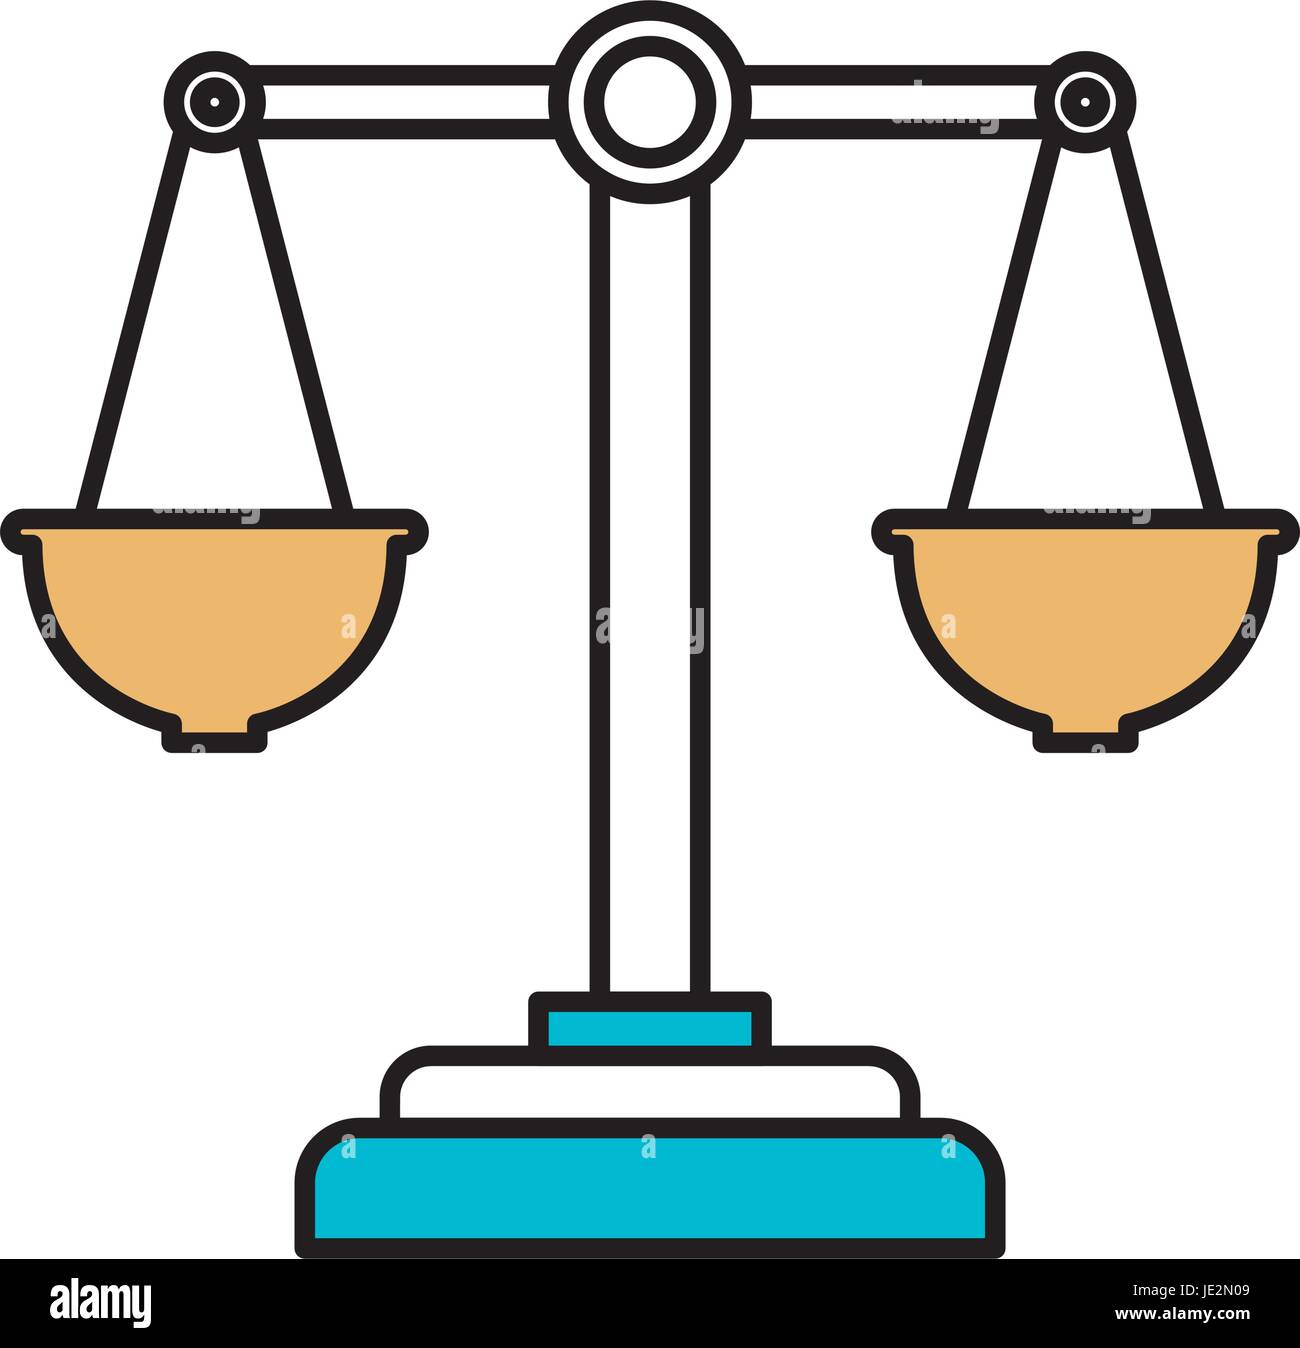 color sections silhouette of justice scales - Stock Vector